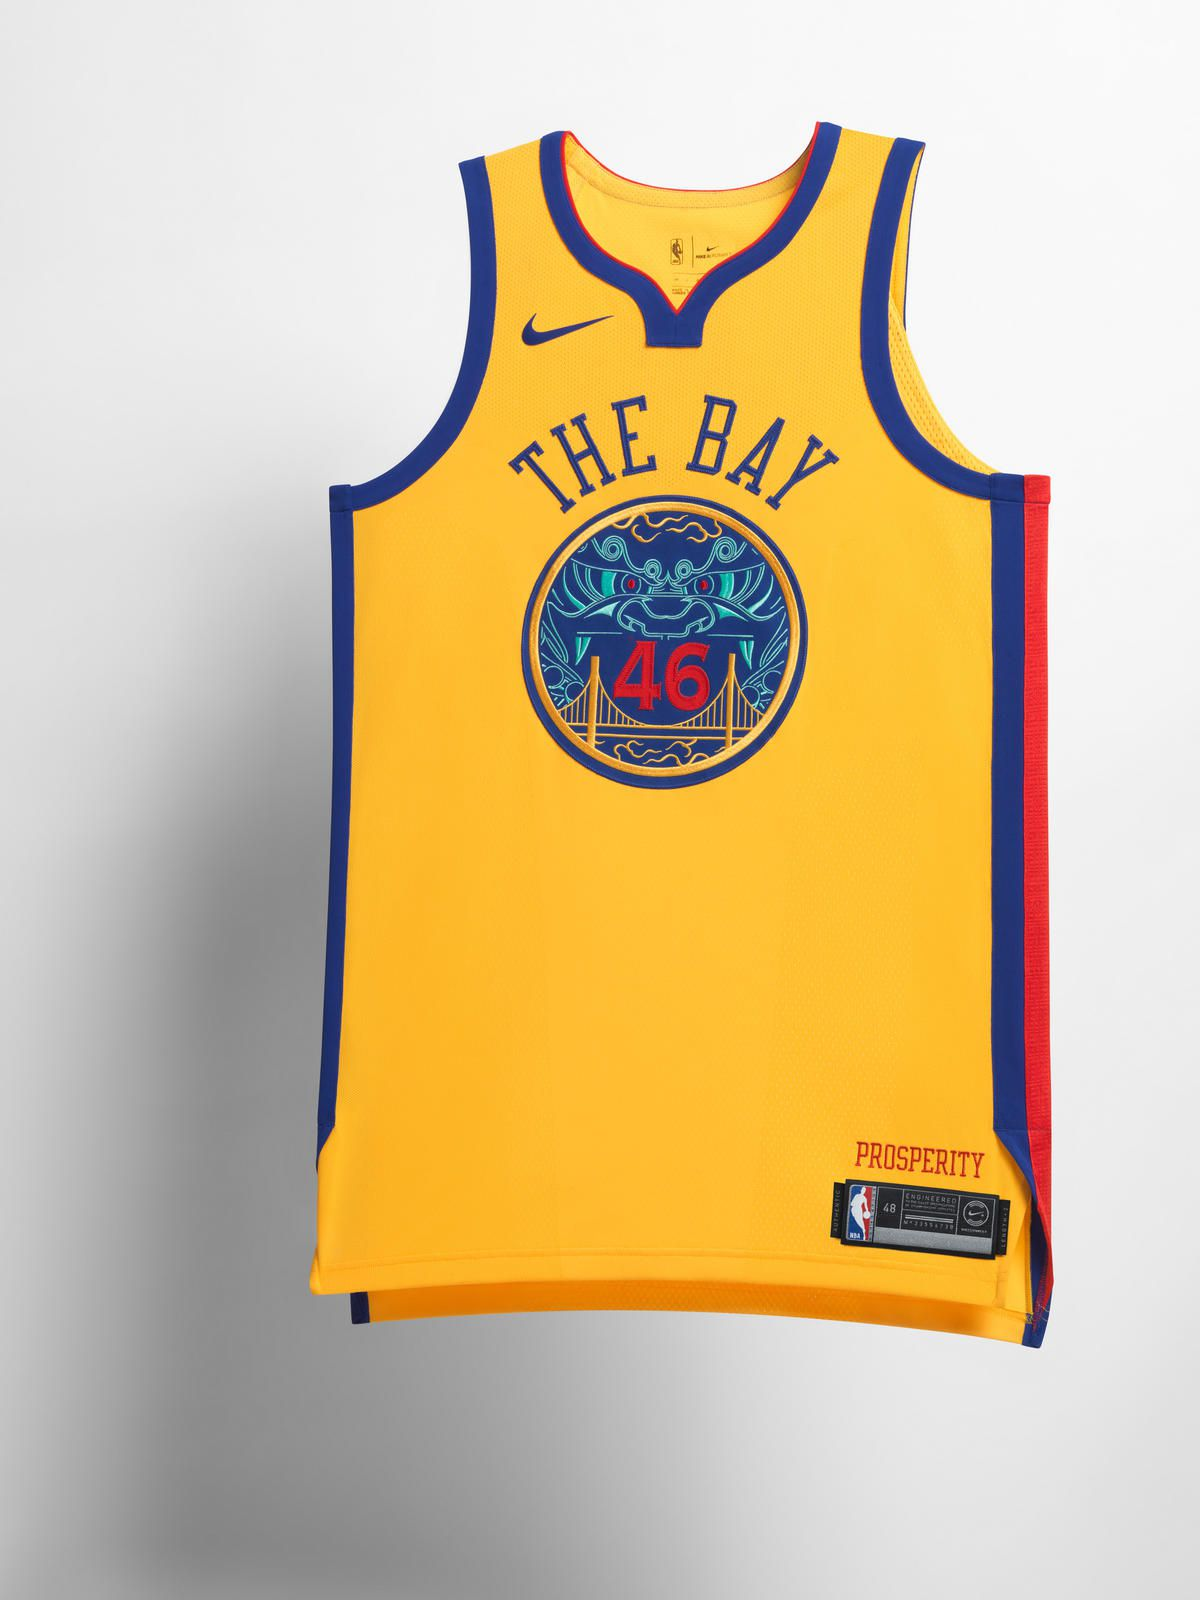 fd6d2628b77 Golden State's City Edition jersey pays homage to the Chinese culture in  the Bay Area, mainly due to the fact that team's relocation to the area  coincided ...